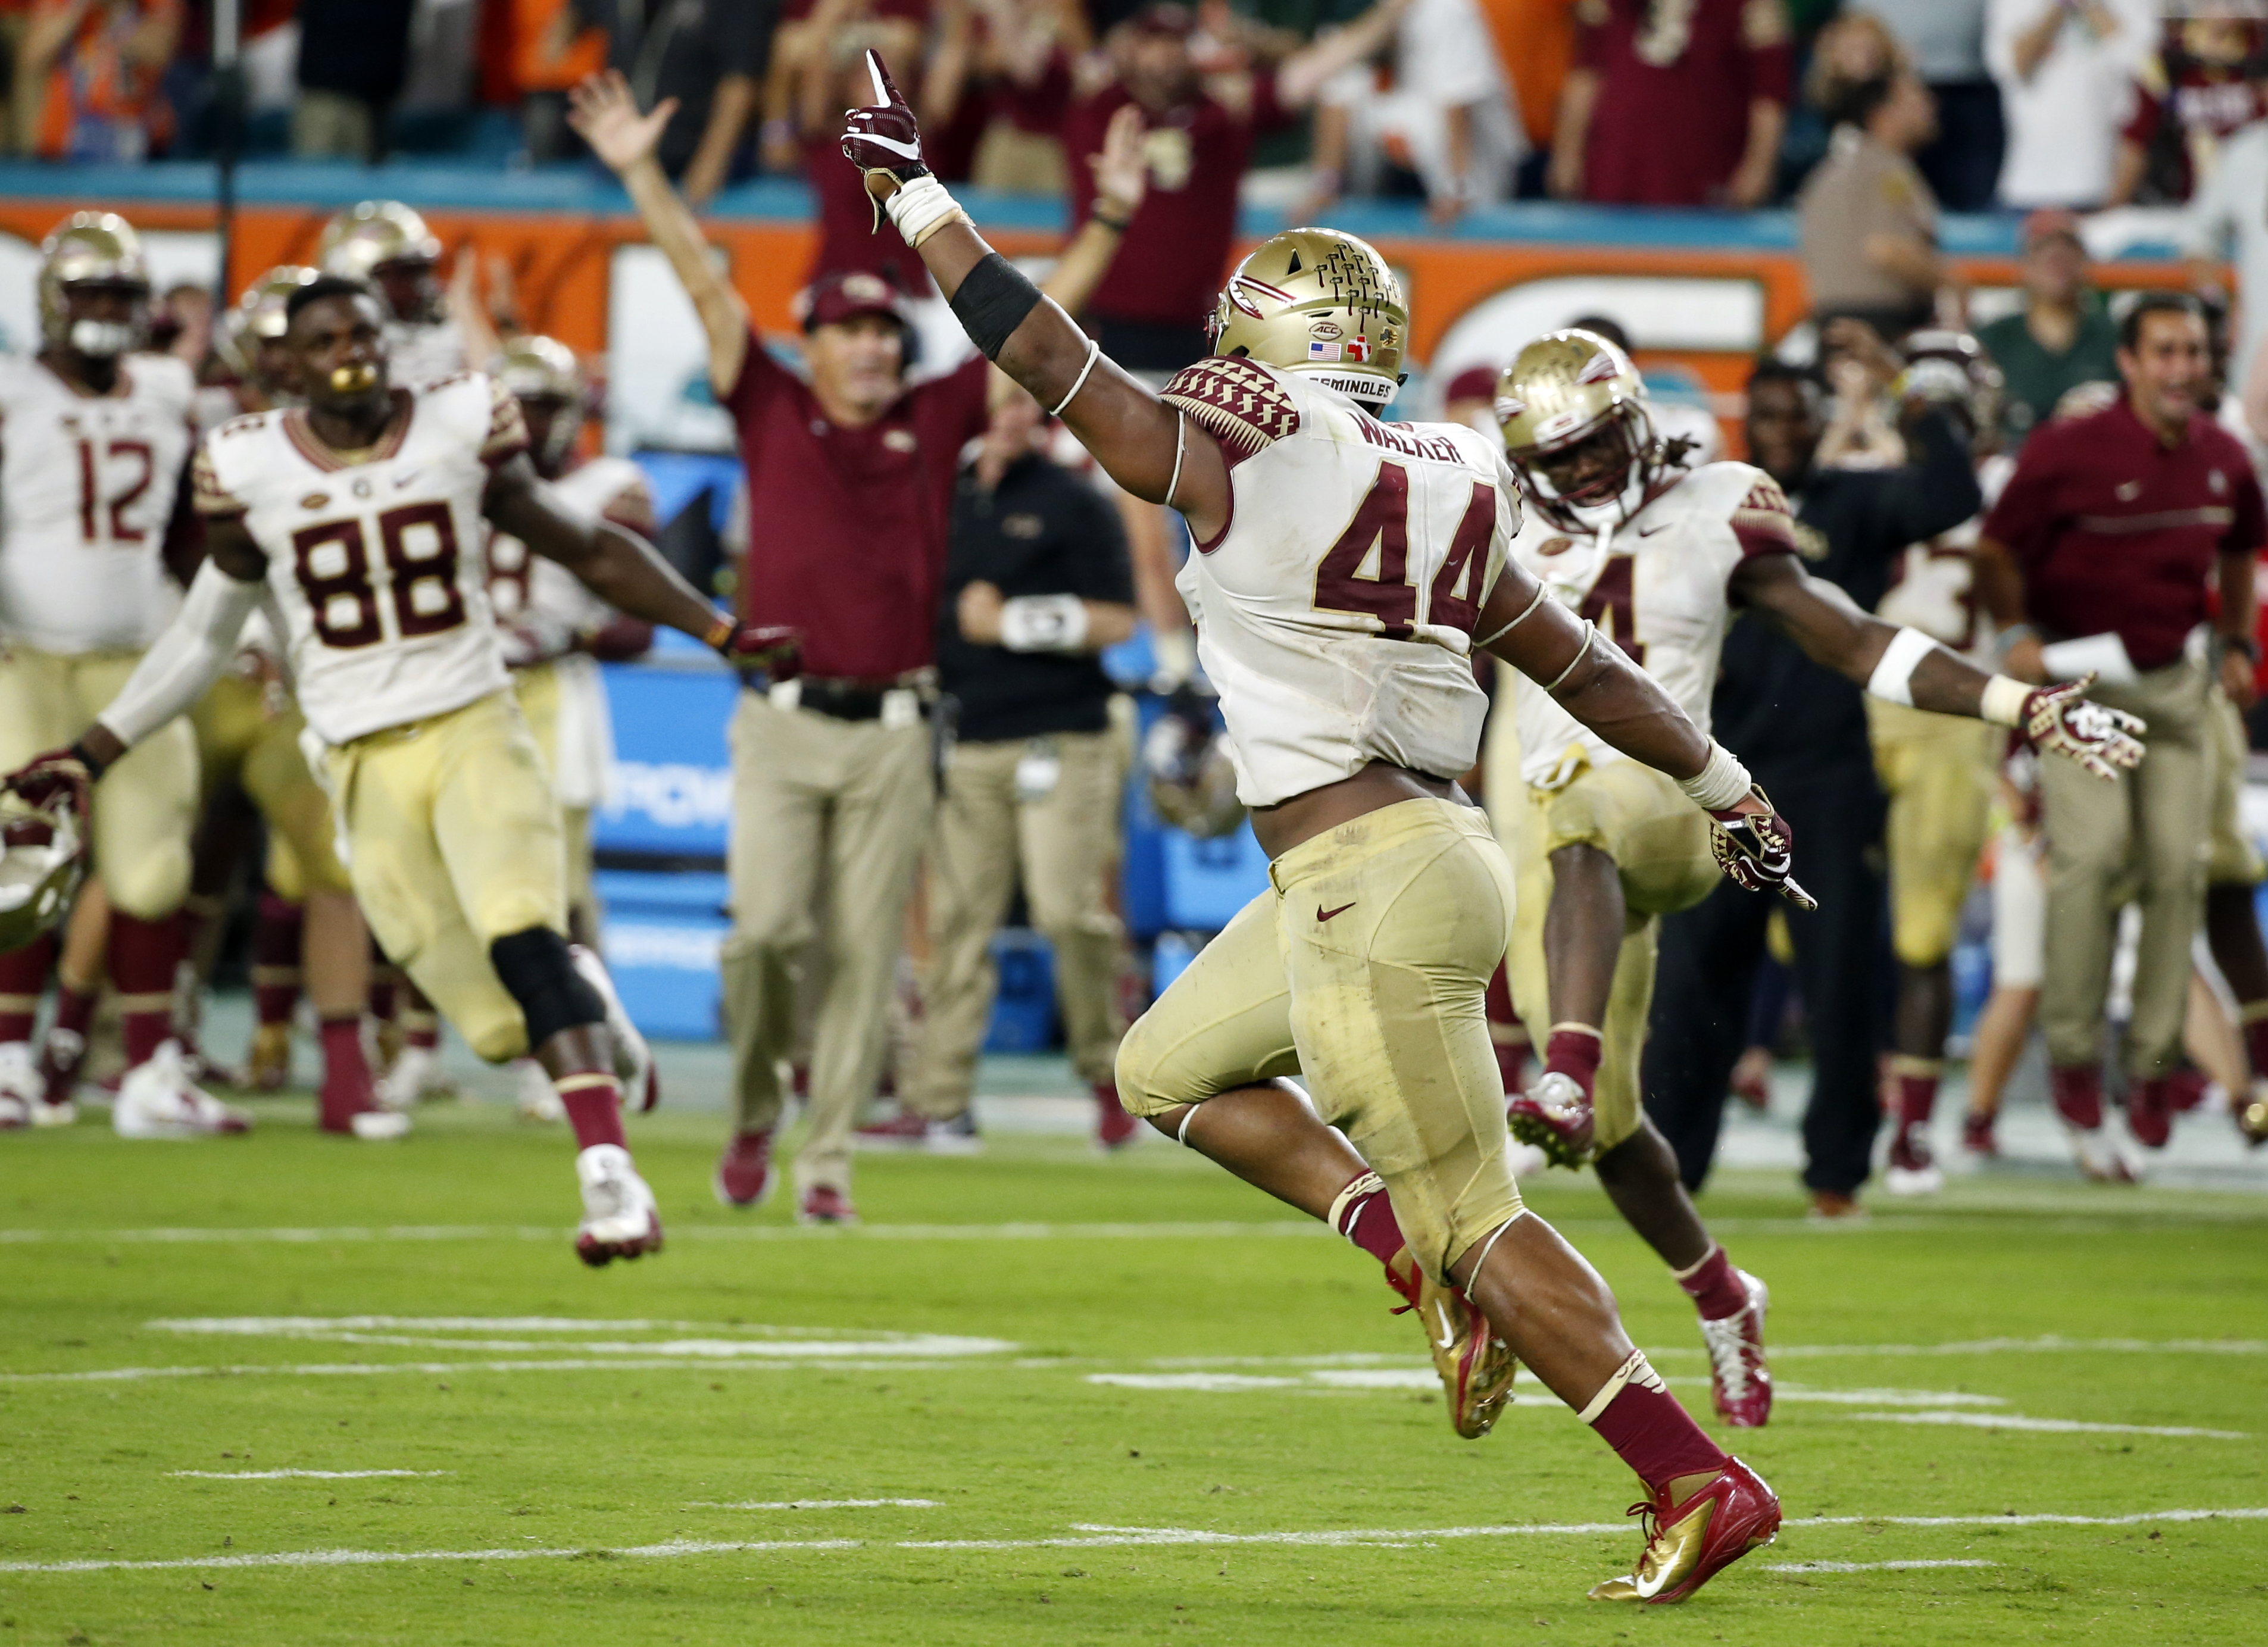 Florida State defensive end DeMarcus Walker (44) celebrates after blocking a field goal during the second half of an NCAA college football game against Miami, Saturday, Oct. 8, 2016, in Miami Gardens. Florida State defeated Miami 201-19. (AP Photo/Wilfred